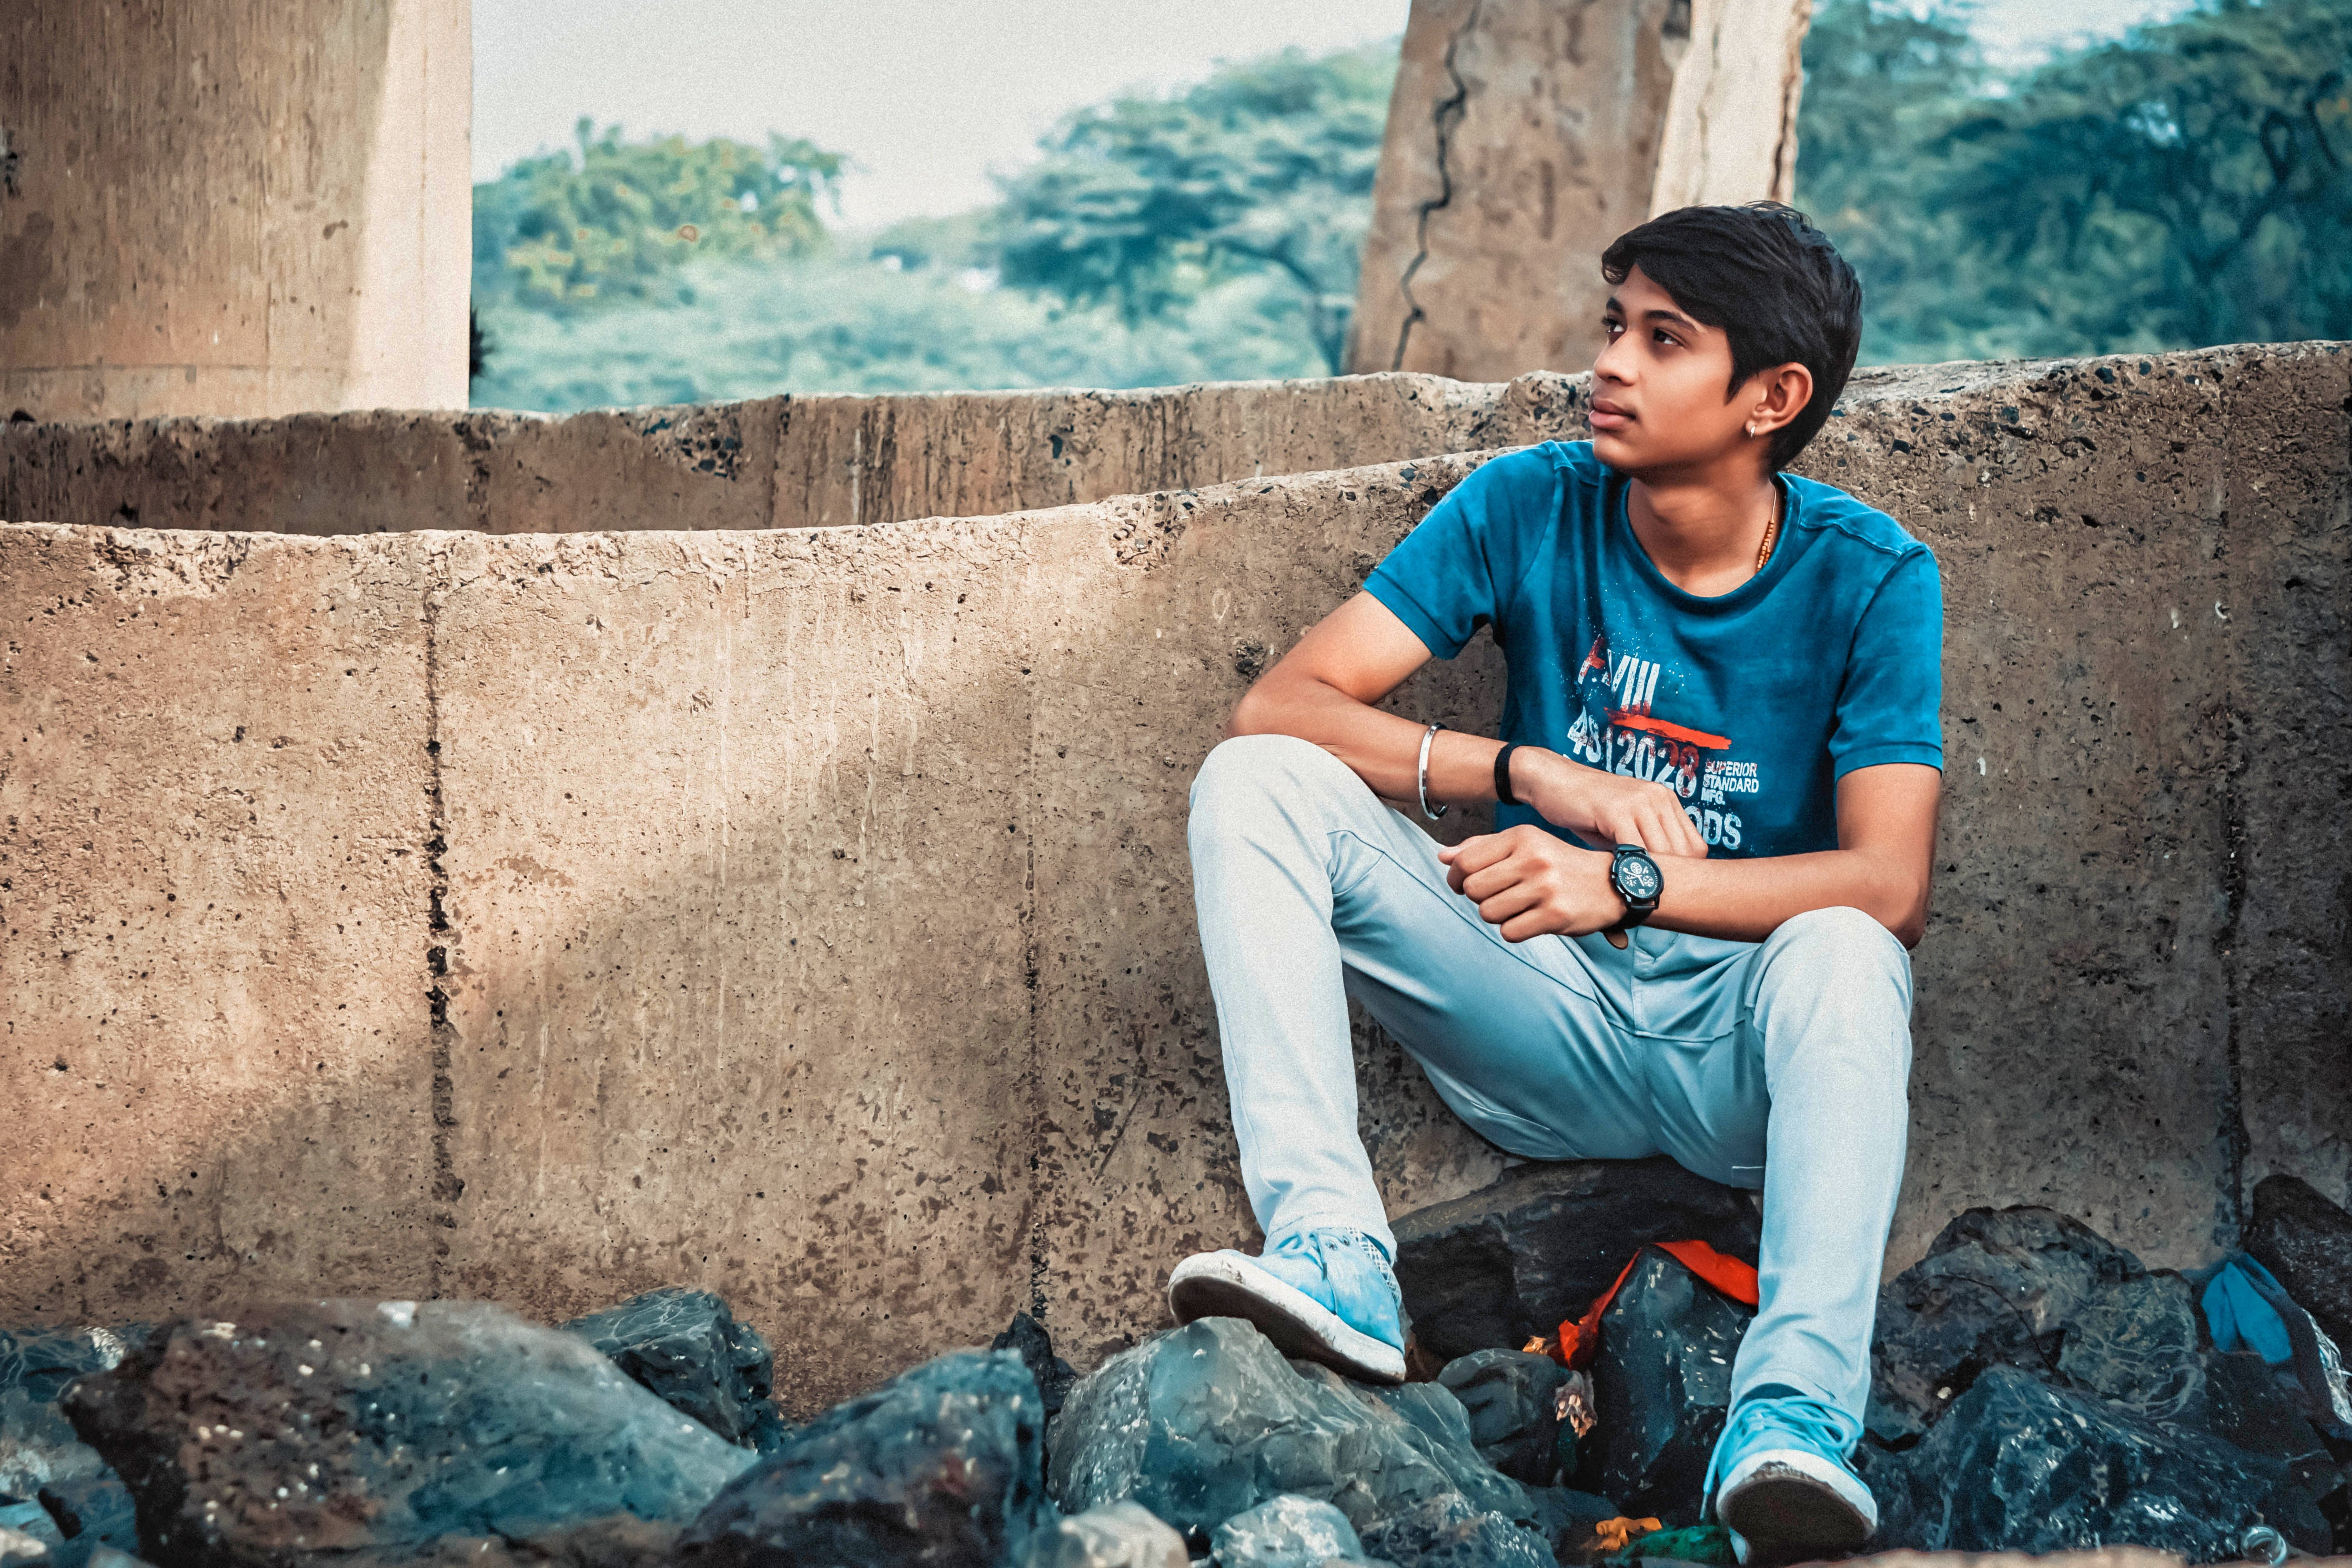 Man Sitting on Stone Leaning on Concrete Wall